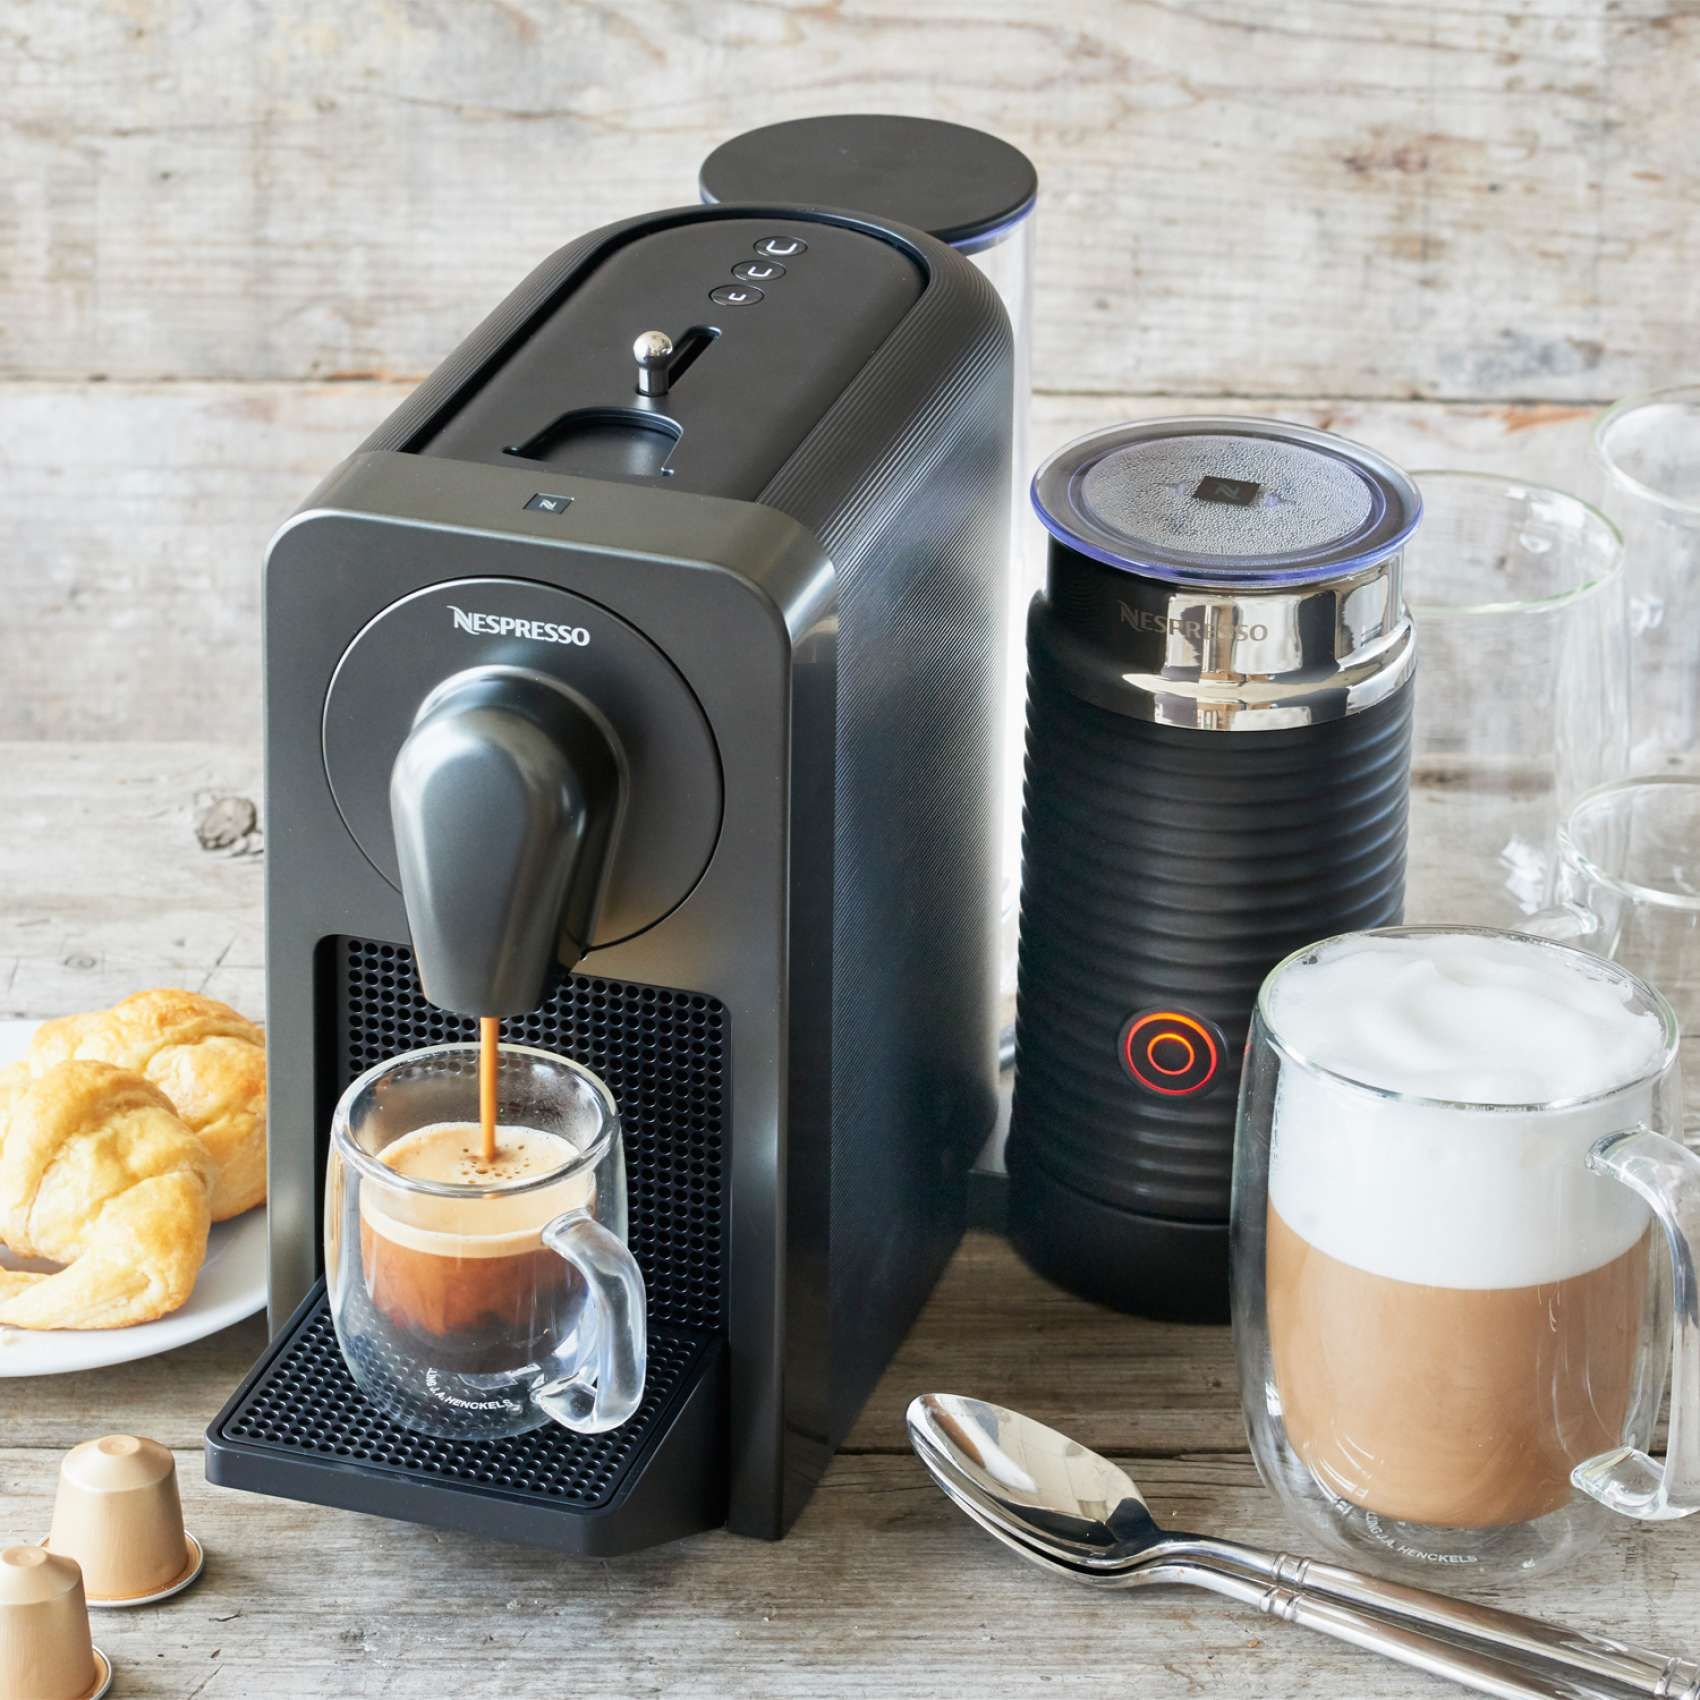 nespresso prodigio espresso machine with milk frother | sur la